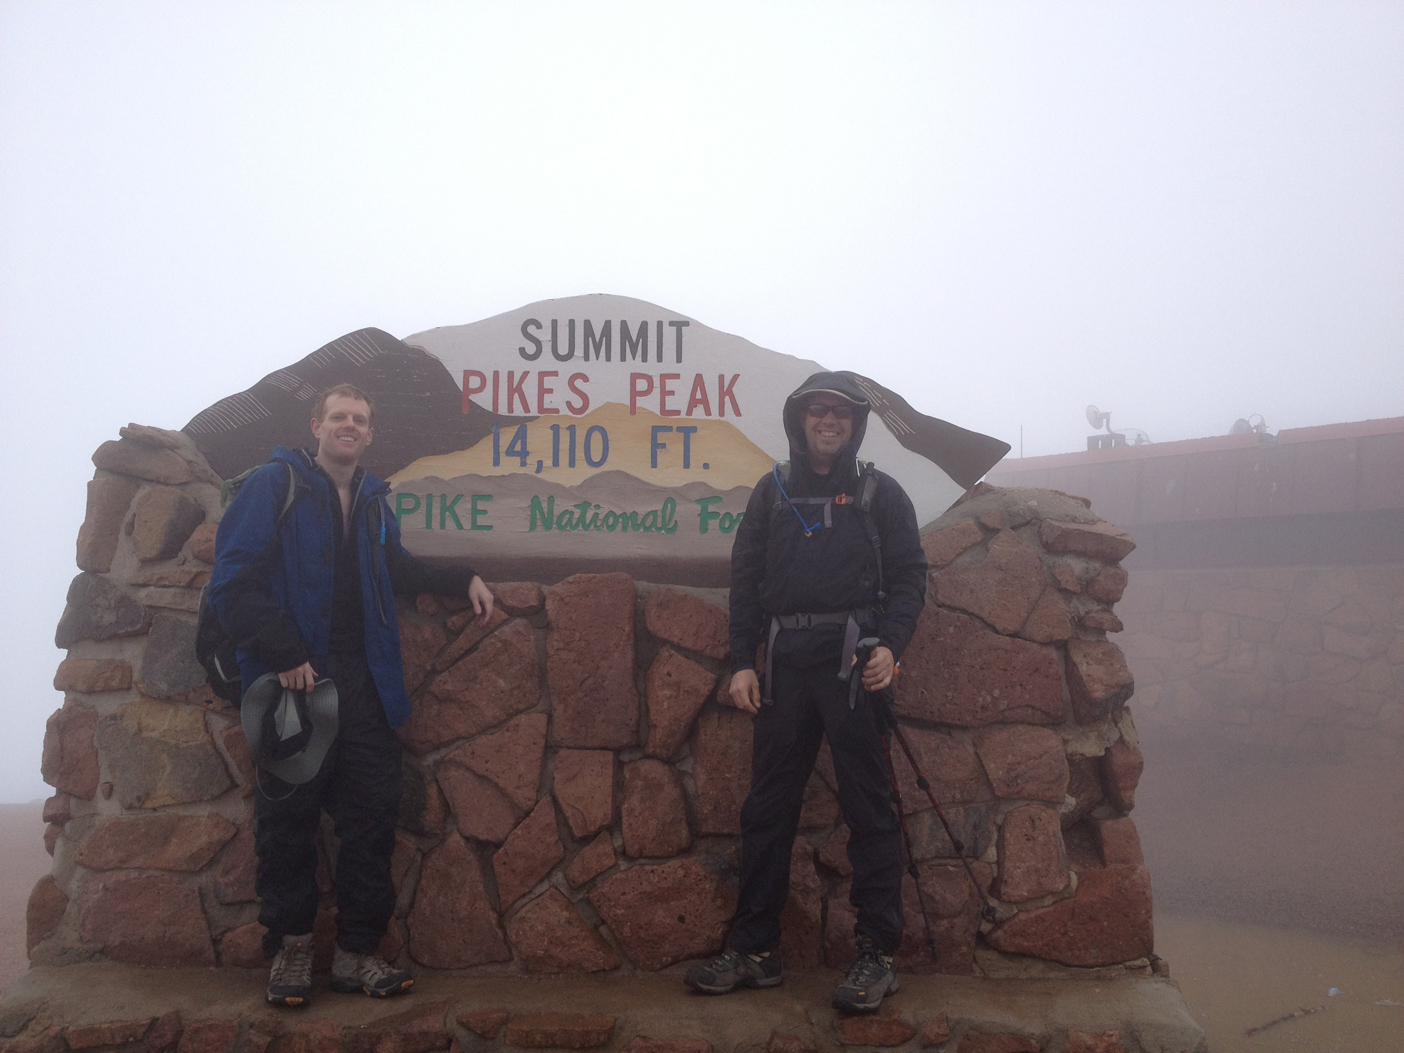 John McDowell and David McDowell on the summit of Pikes Peak at 14,110 ft.